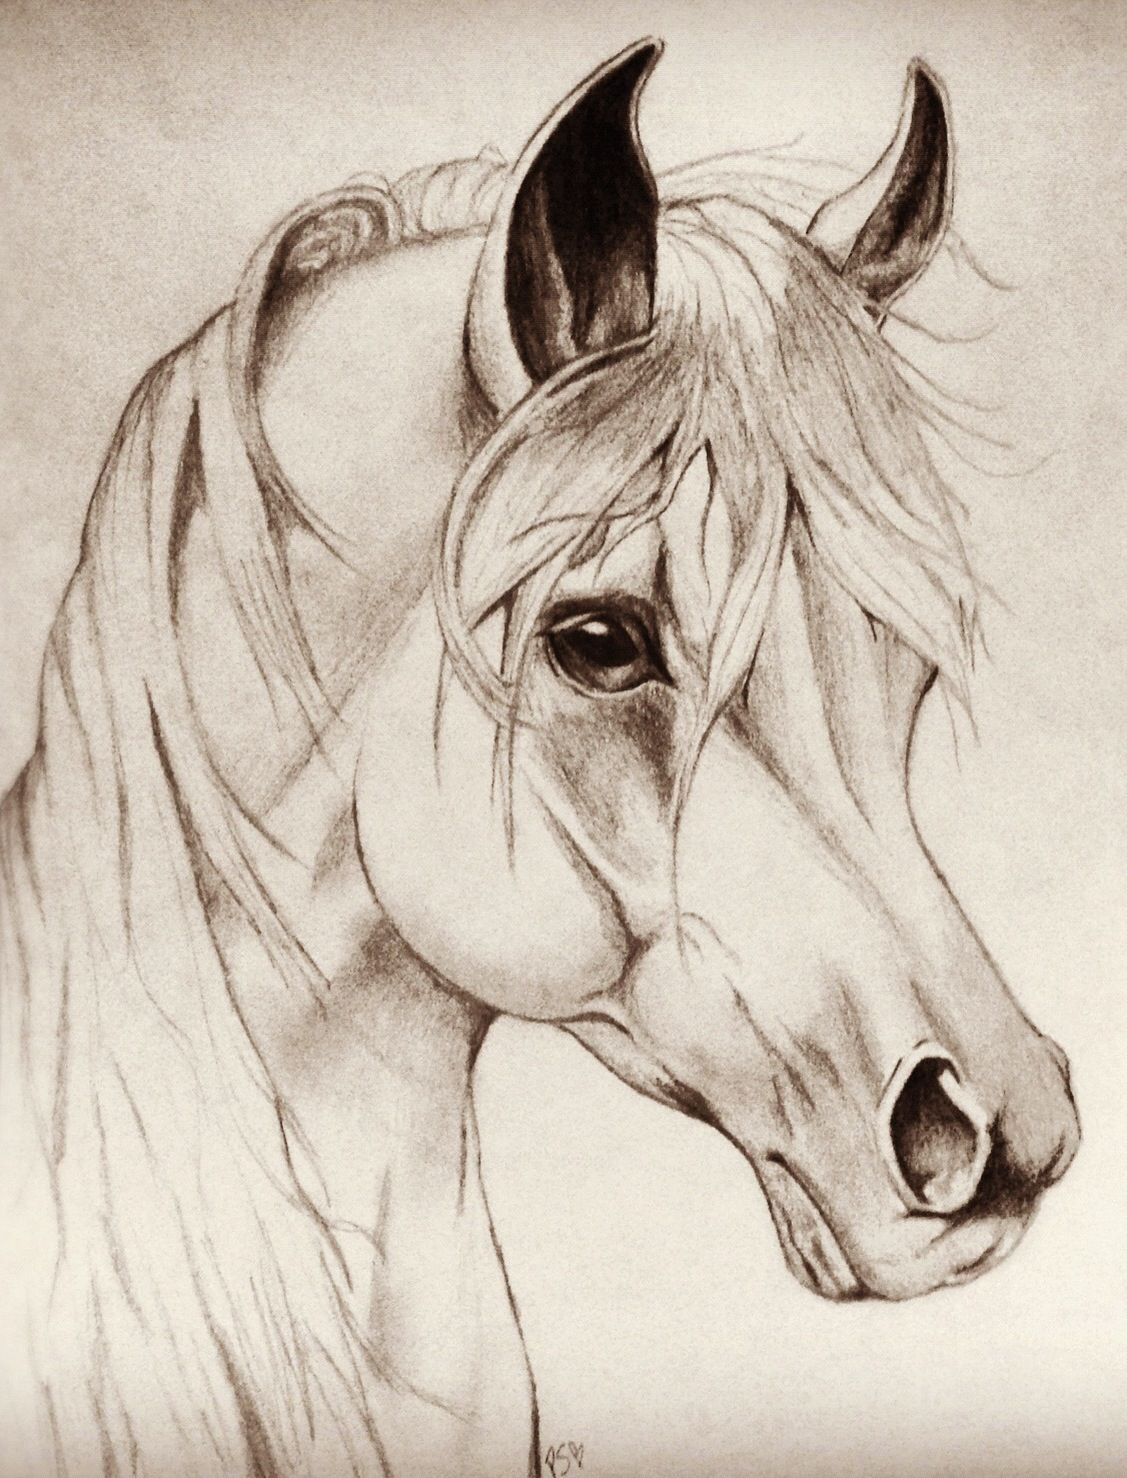 1127x1478 Horse Drawing By Patrycia Sulewski.( Drawn With Pencil. Horse